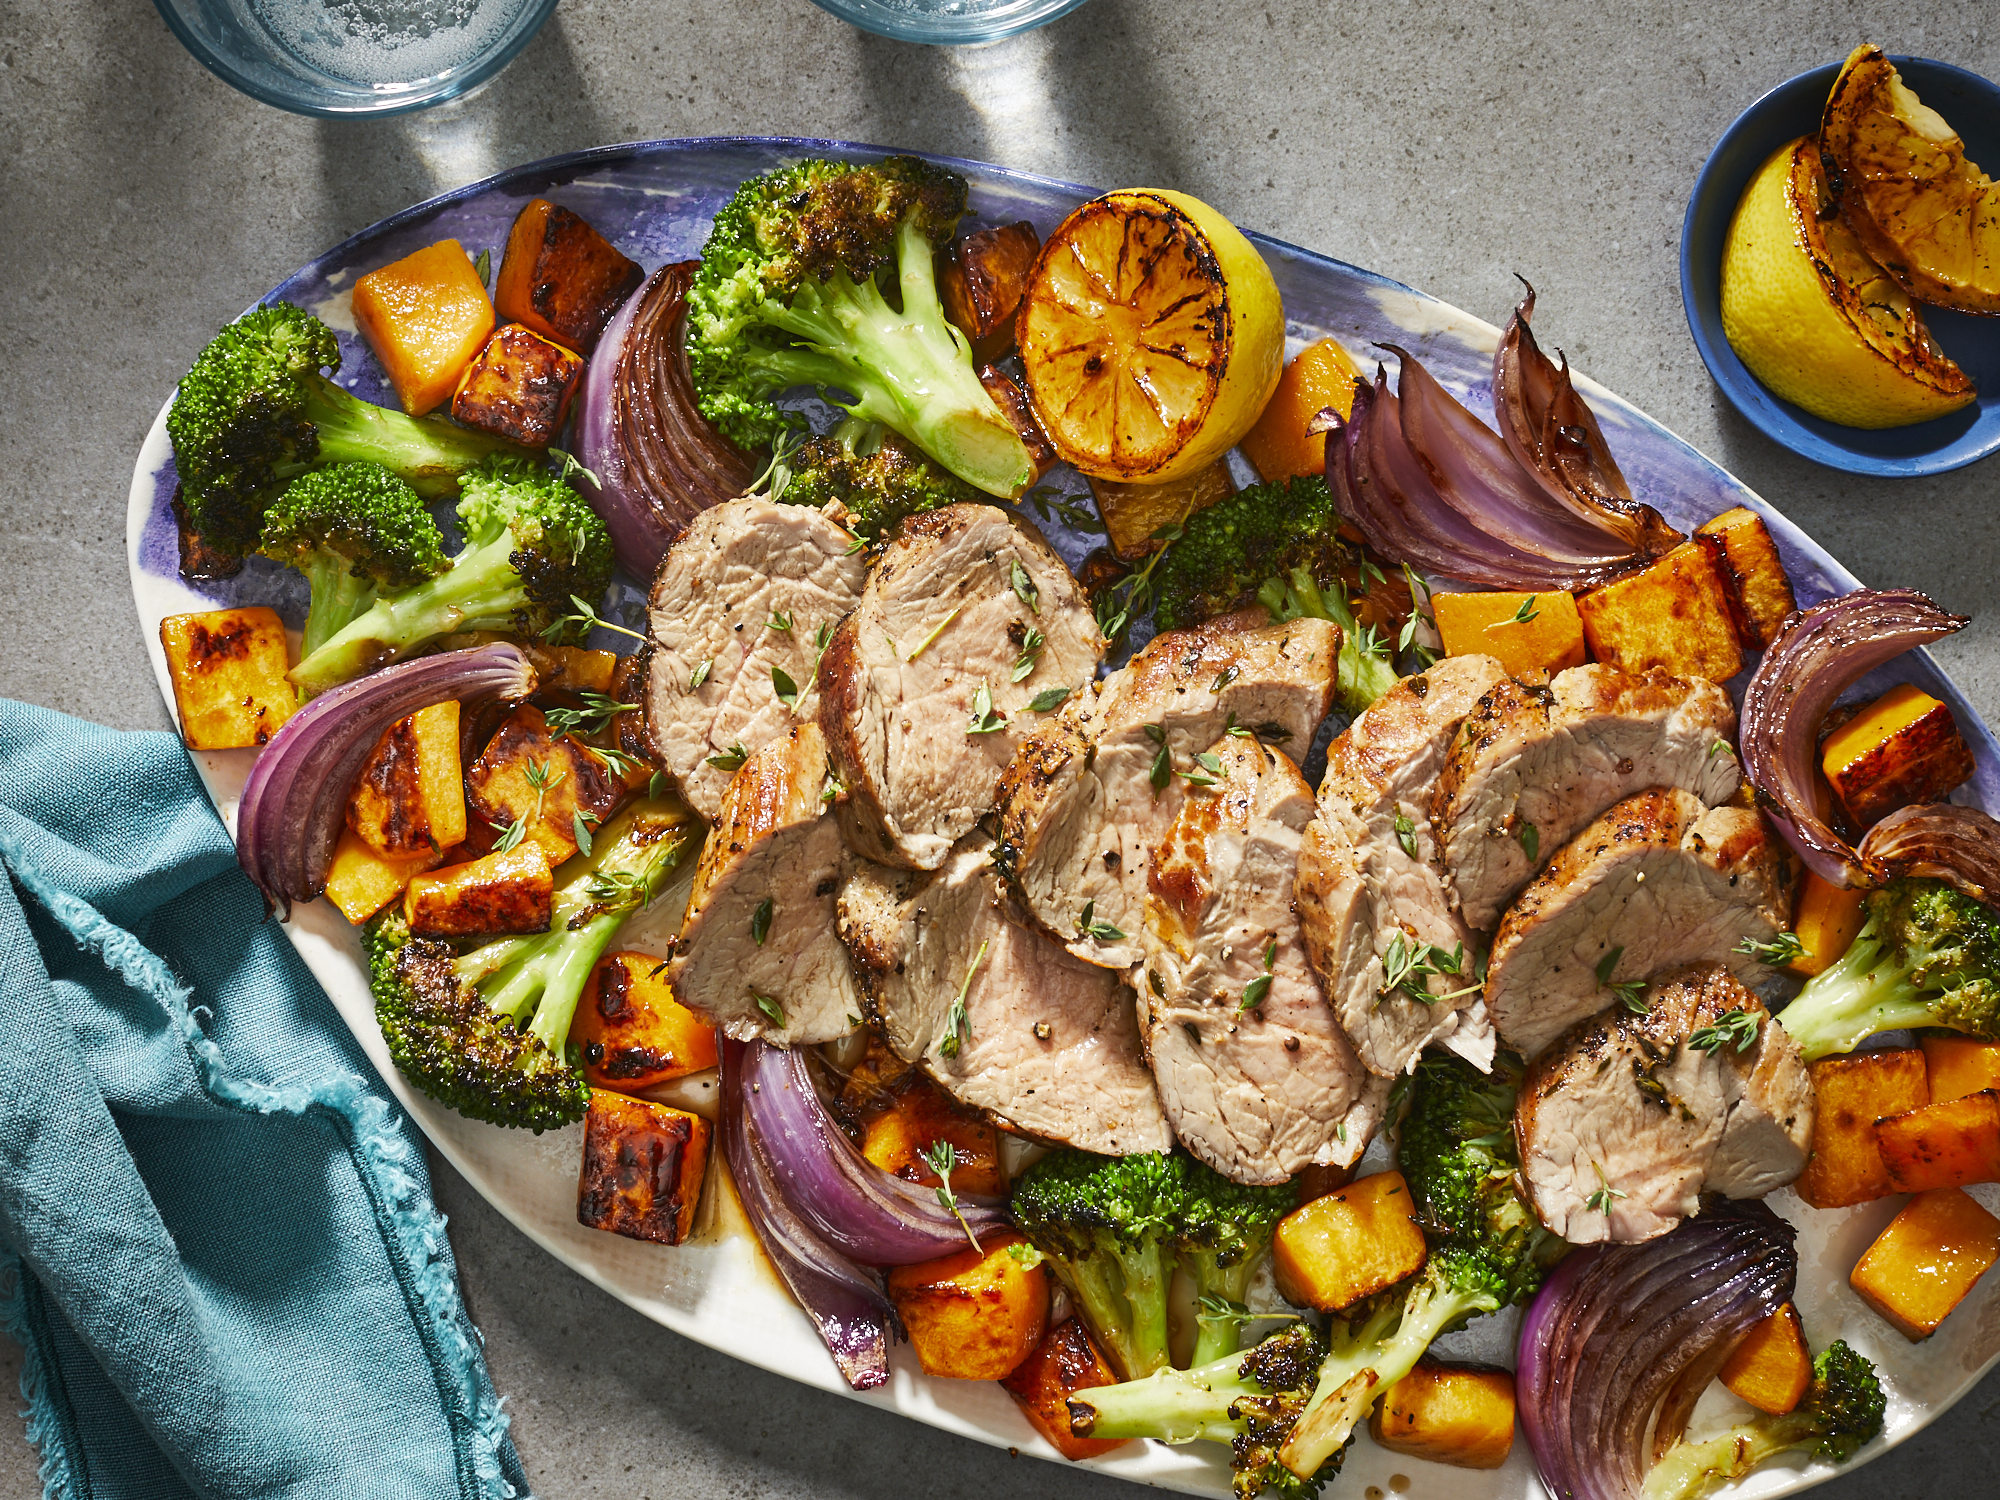 Sheet Pan Pork Tenderloin with Broccoli and Butternut Squash